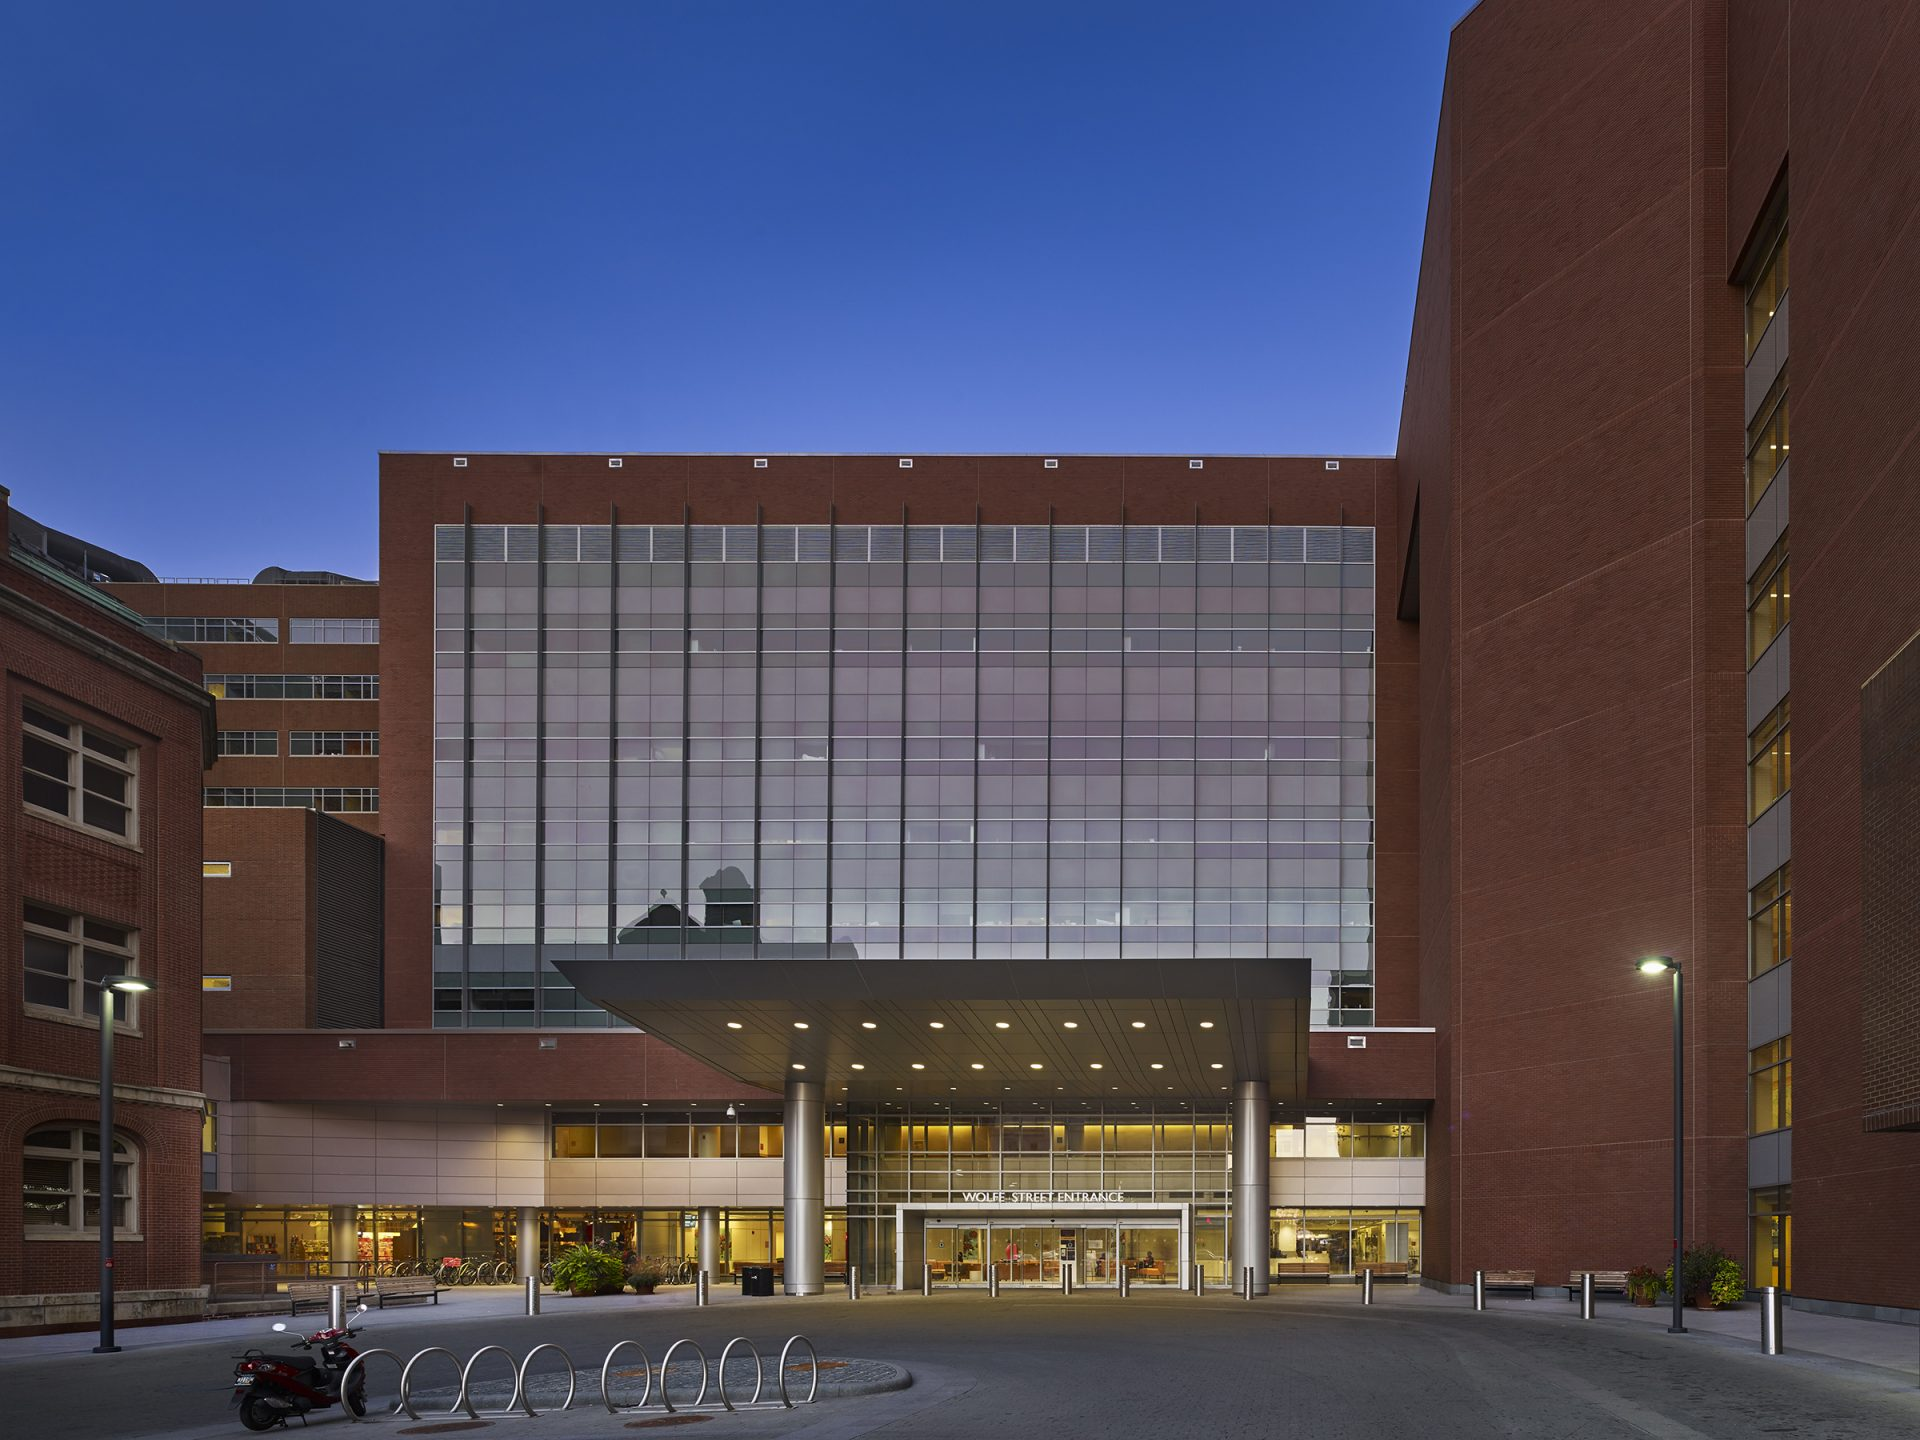 johns hopkins hospital nelsonharvey building 187 wilmot